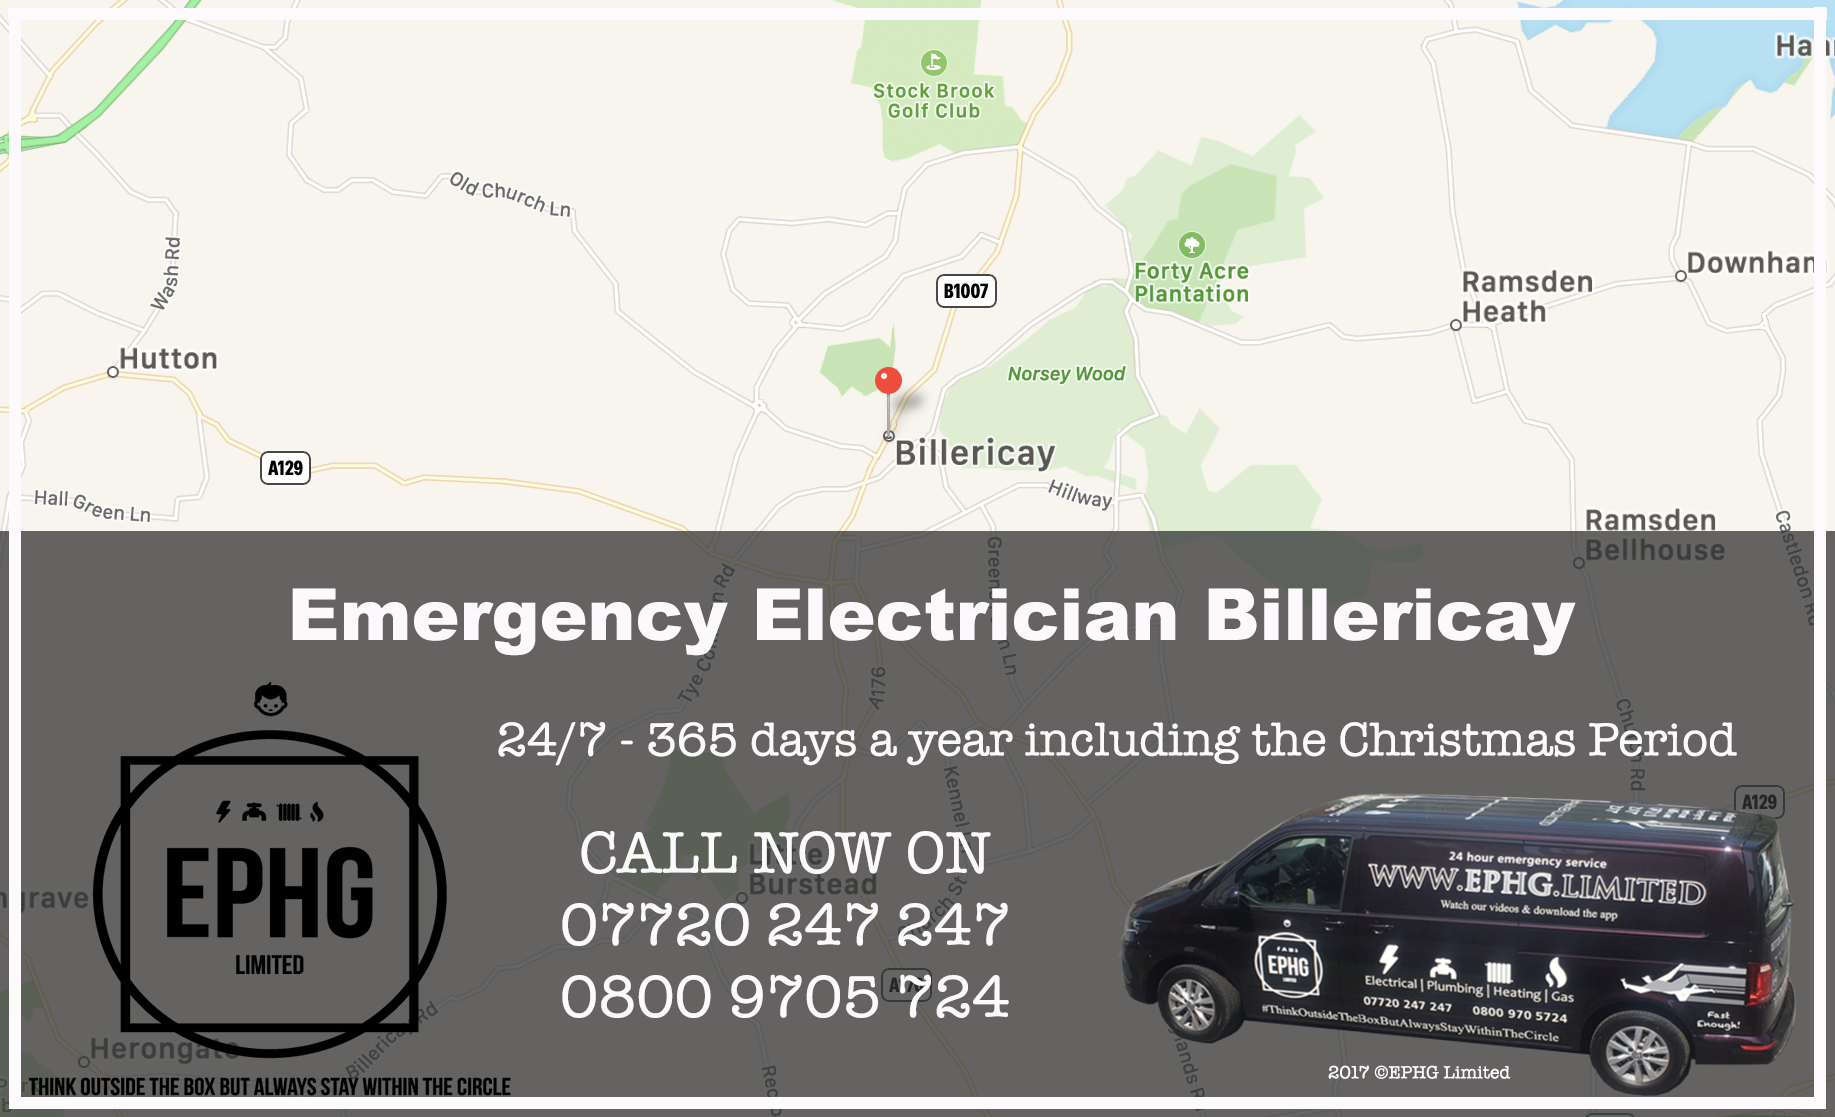 Emergency Electrician Billericay